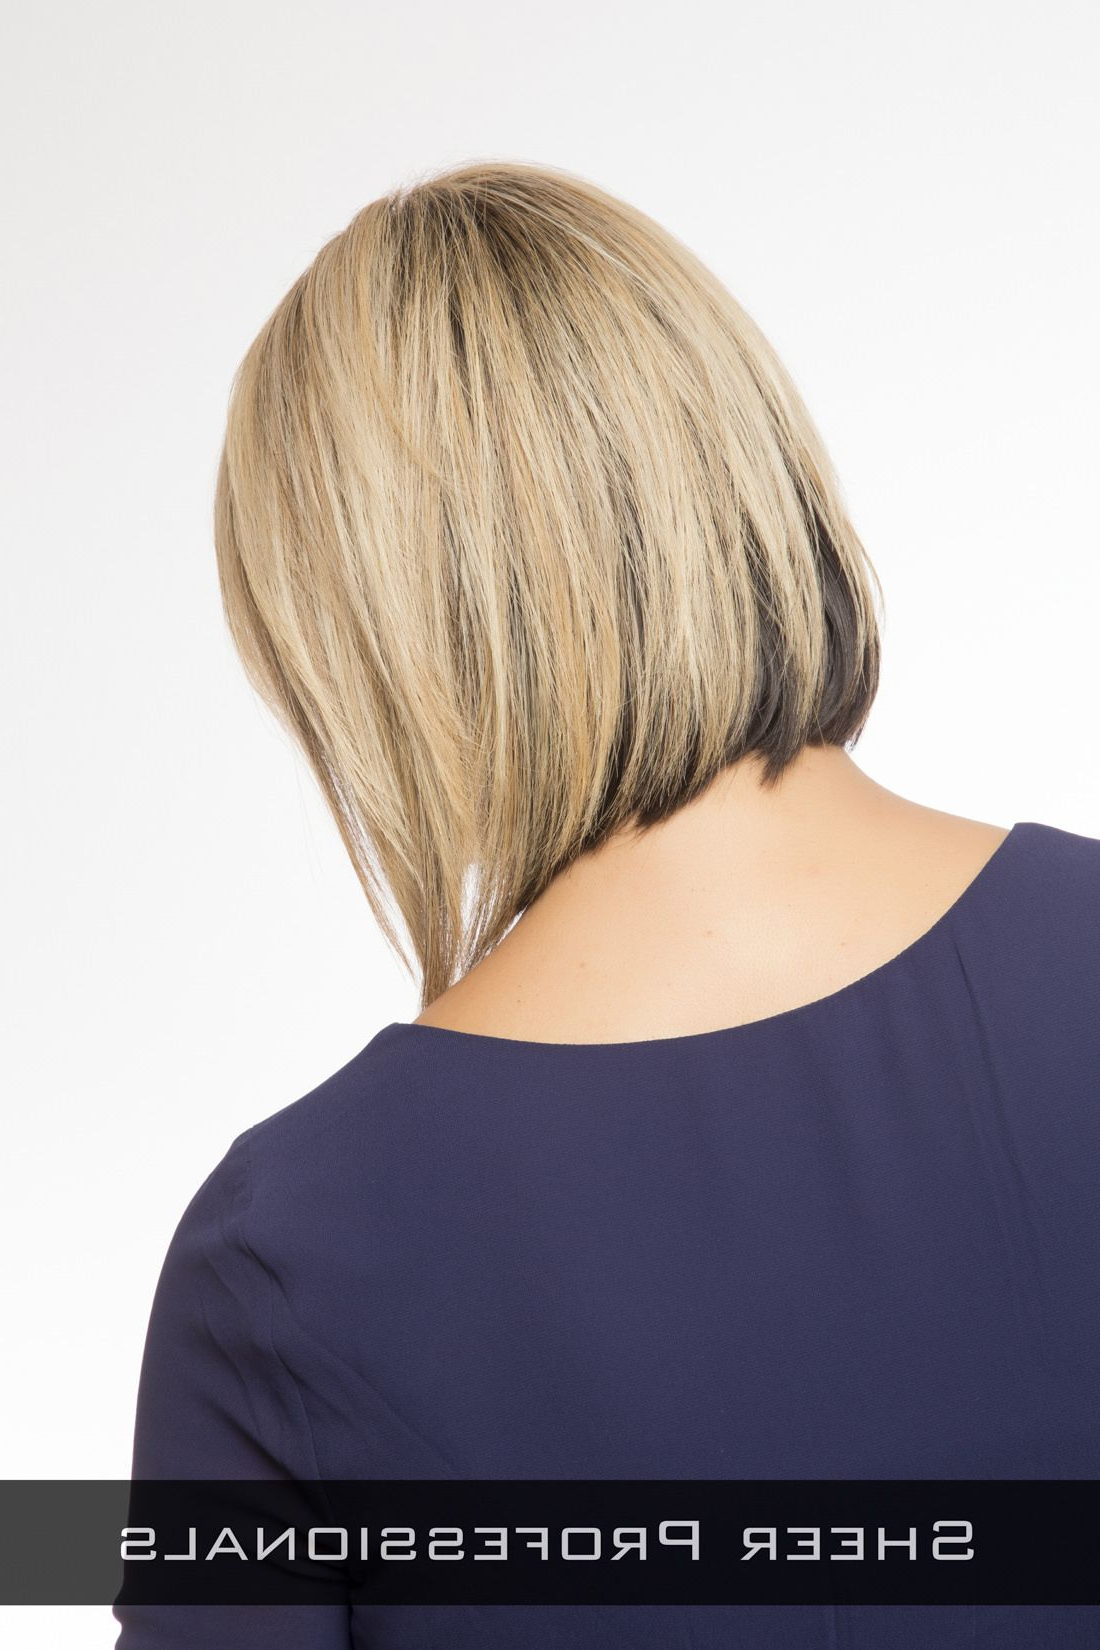 34 Perfect Short Haircuts And Hairstyles For Thin Hair (2018 Within Sleek Bob Hairstyles For Thin Hair (View 3 of 20)